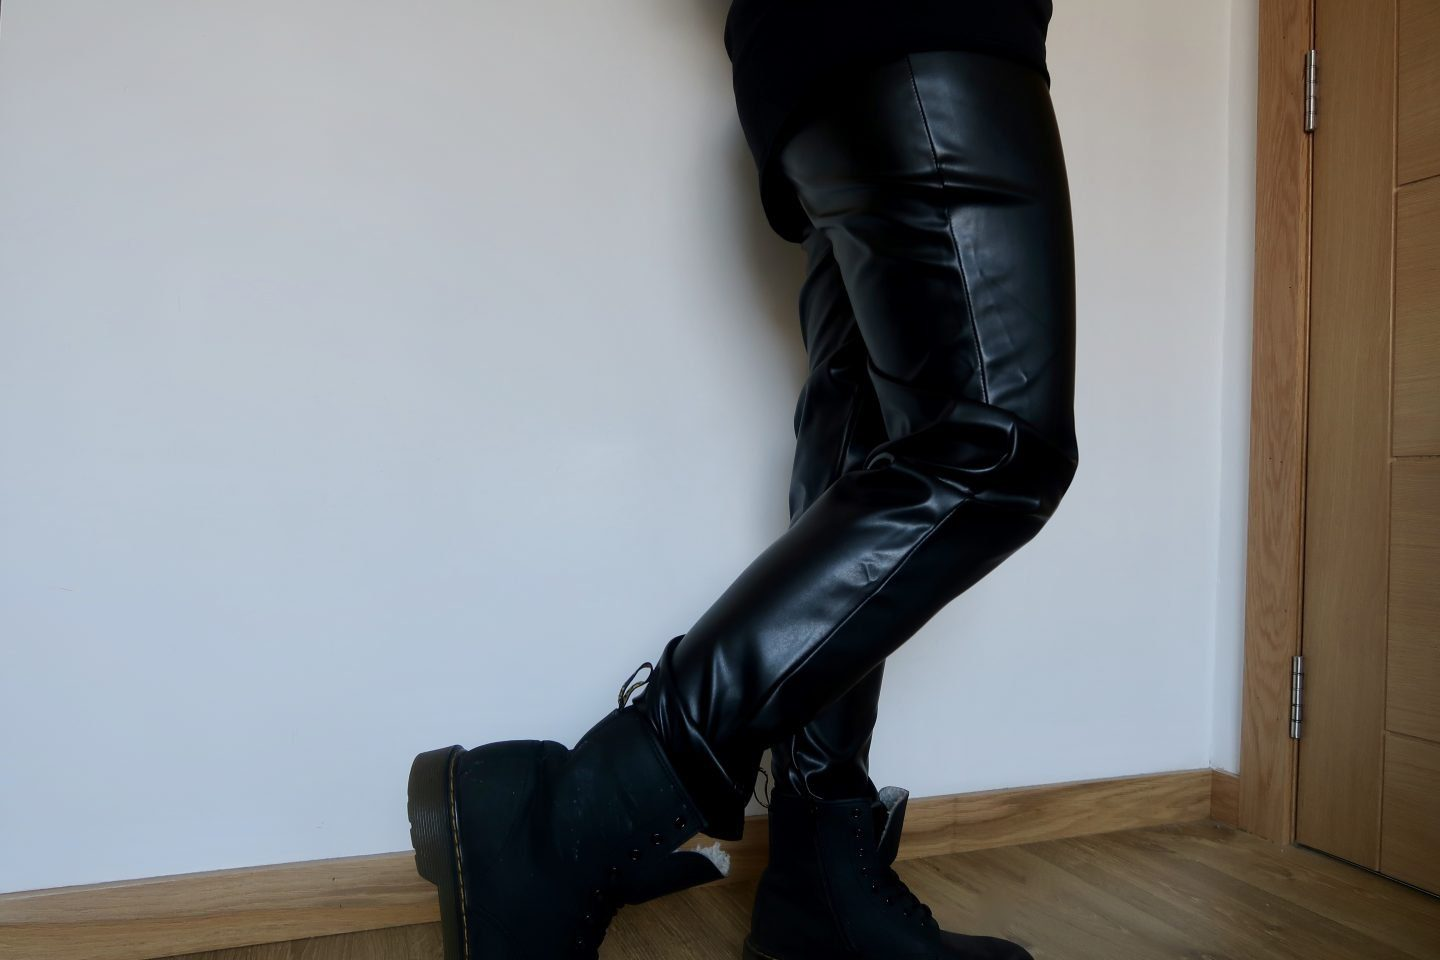 A pair of legs wearing black fake leather trousers